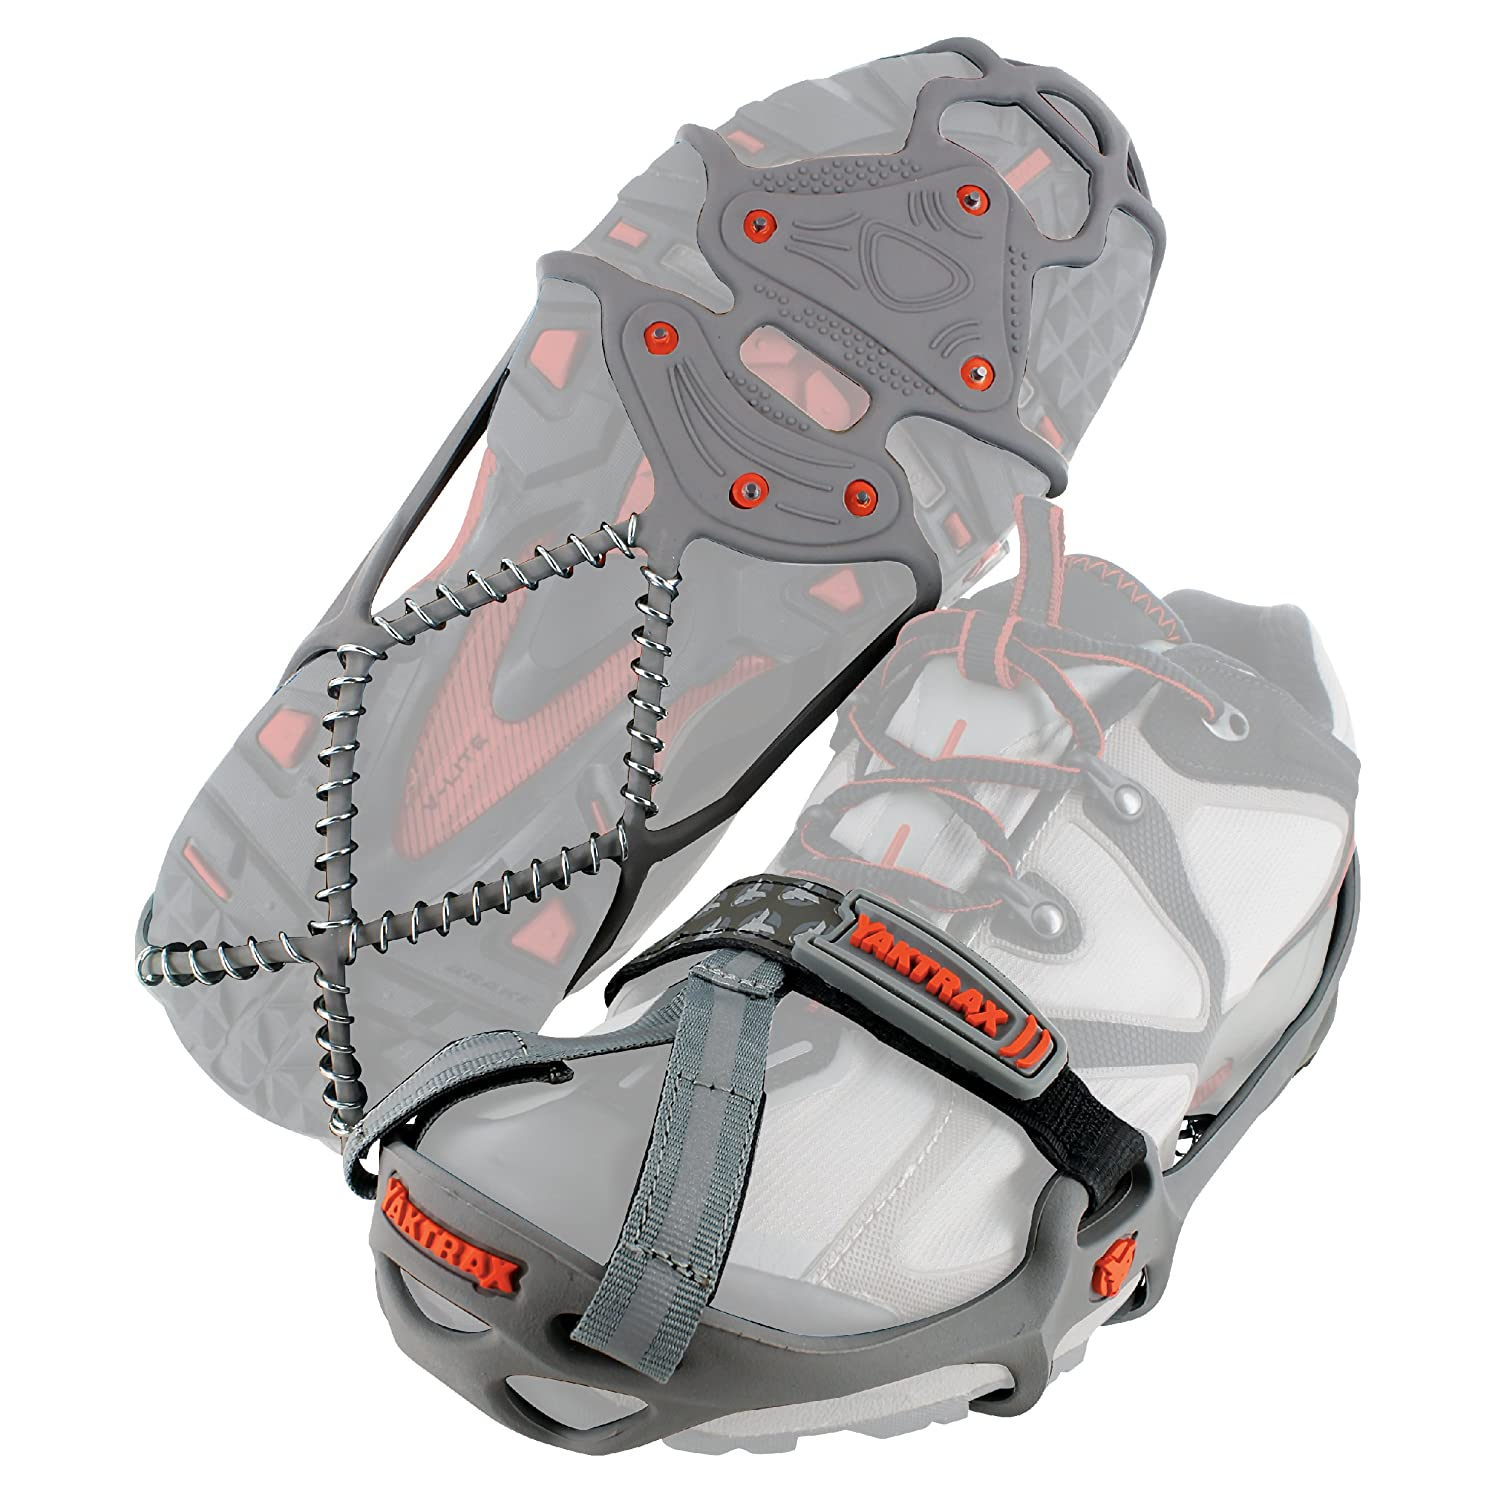 Yaktrax Run Traction Cleats for Running on Snow and Ice, X-Large 8164